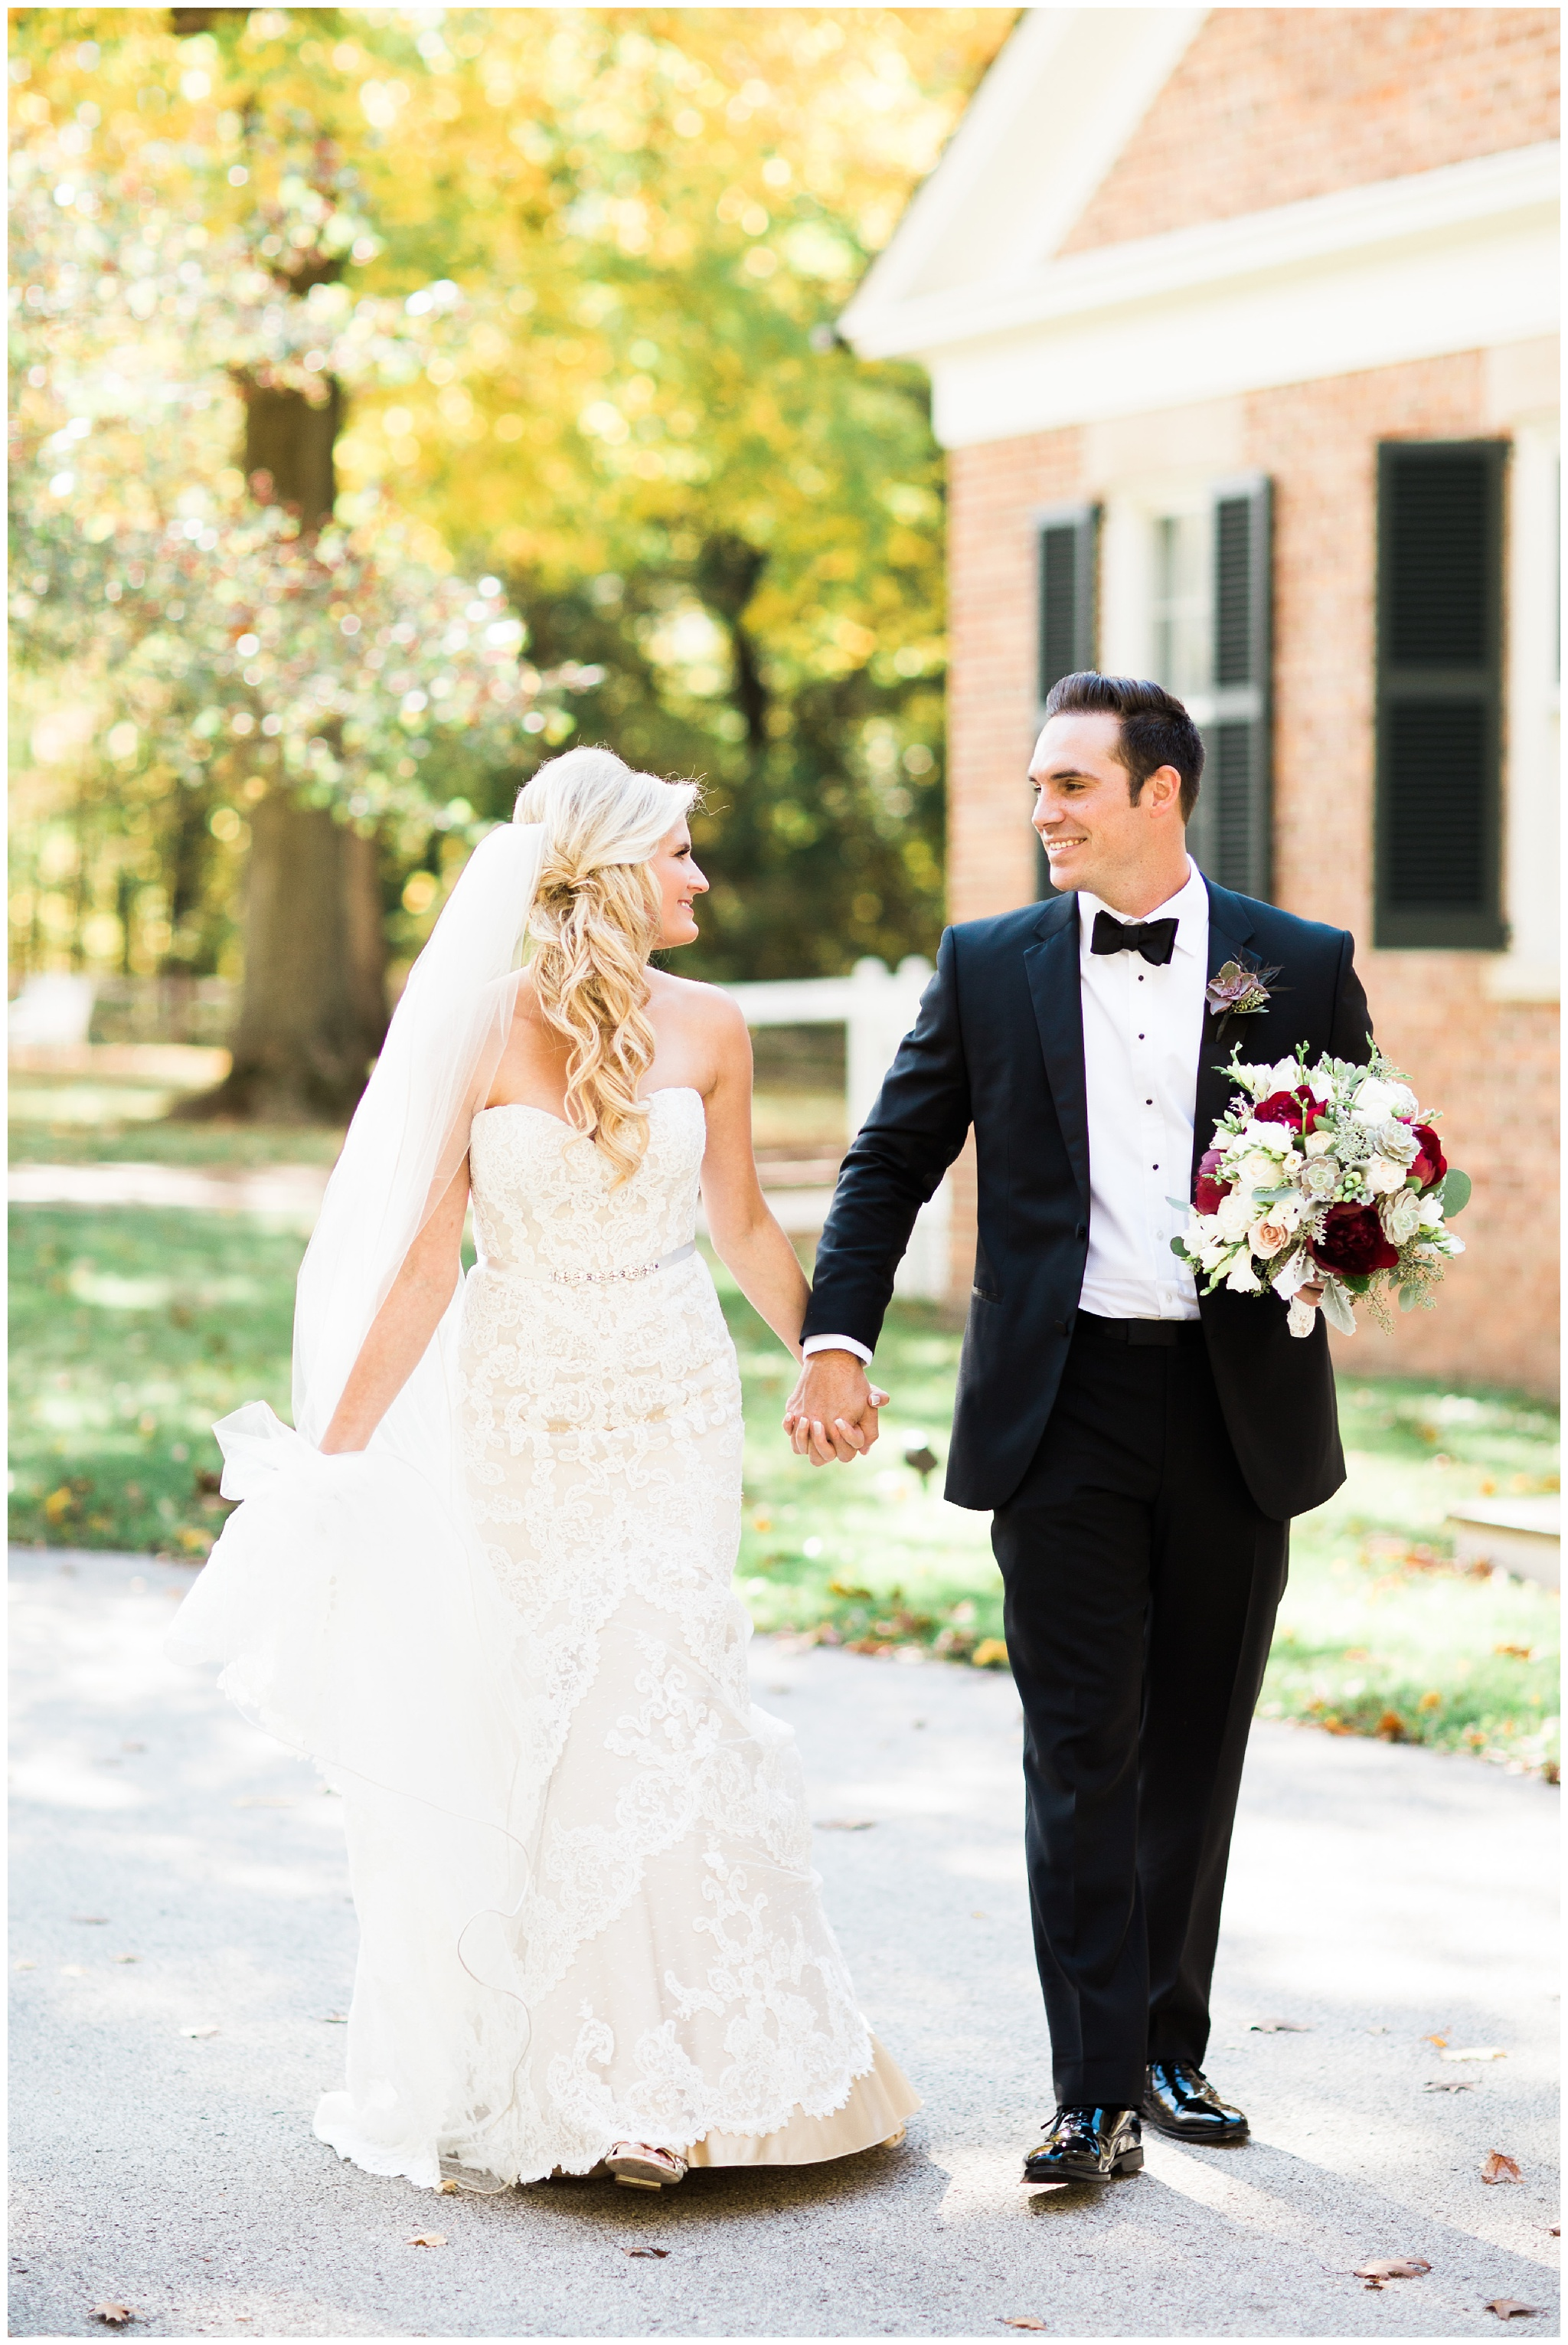 RebeccaHaleyPhotography_BarringtonPhotographer_ChicagoPhotographer_ChicagoWedding_0040.jpg